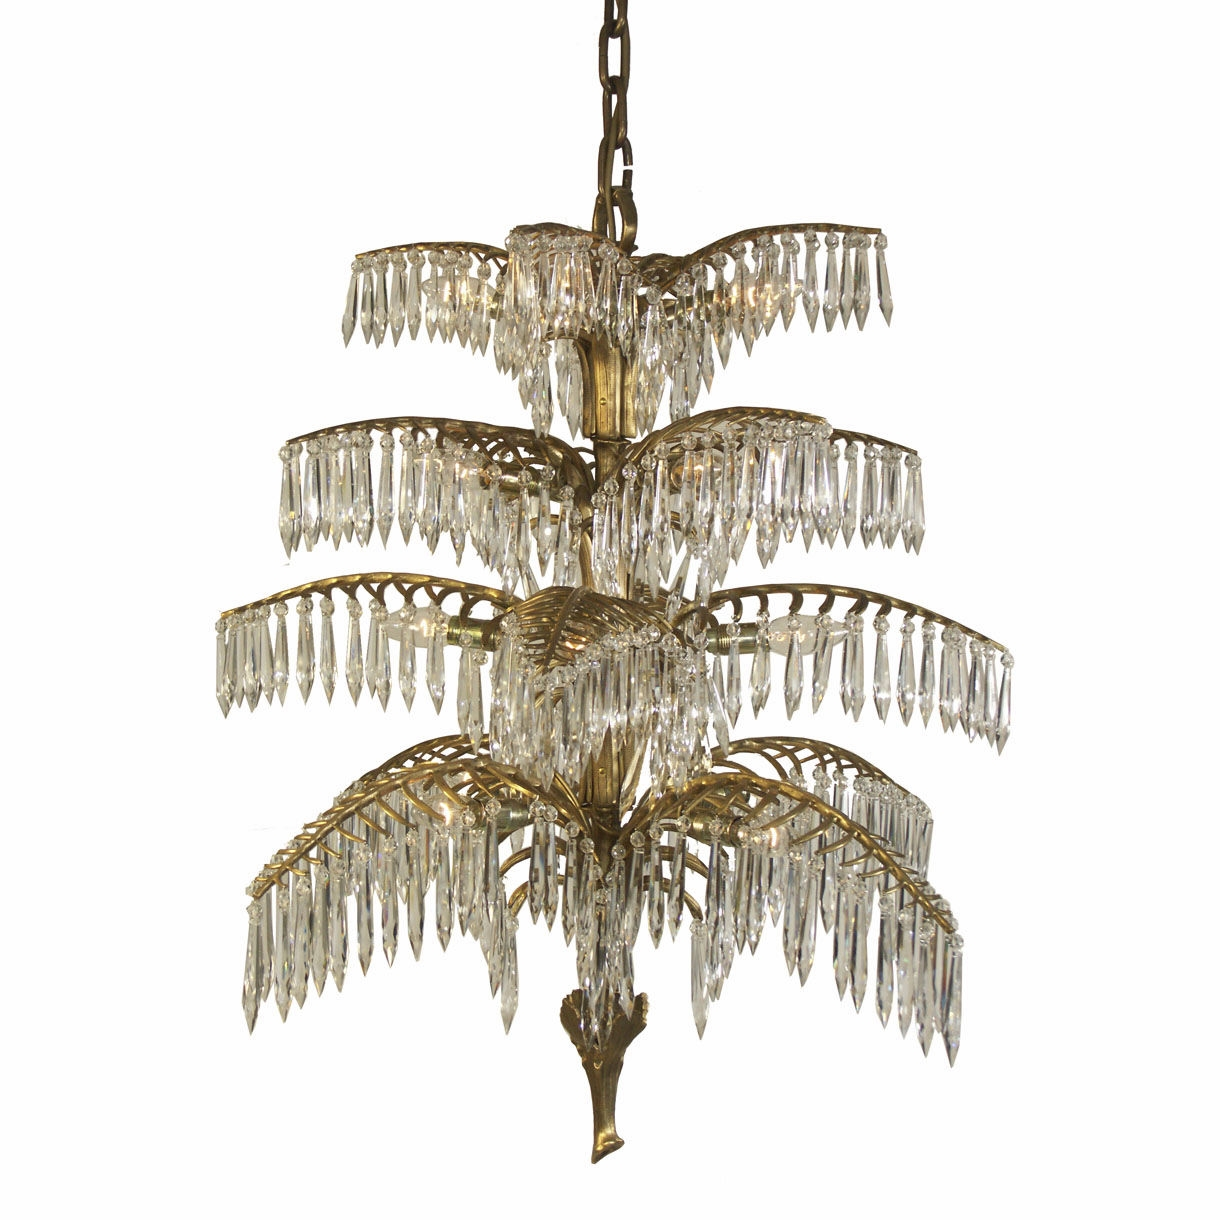 Traditional Chandelier Crystal Brass Handmade Palme 20332 Intended For Traditional Chandelier (Image 9 of 15)